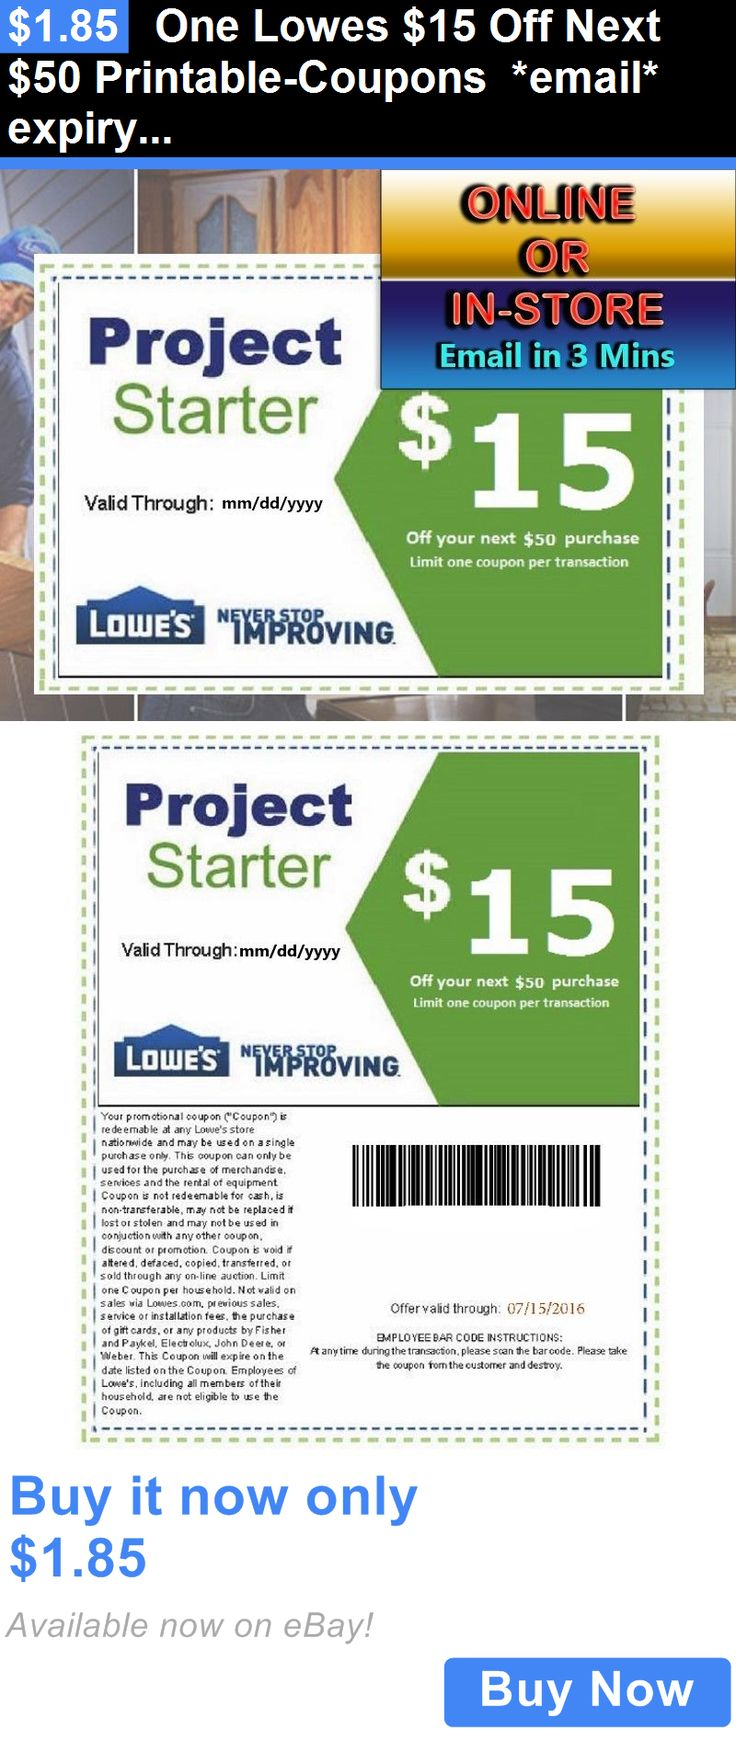 Coupons: One Lowes $15 Off Next $50 Printable-Coupons *Email* Expiry 12/07/16 BUY IT NOW ONLY: $1.85